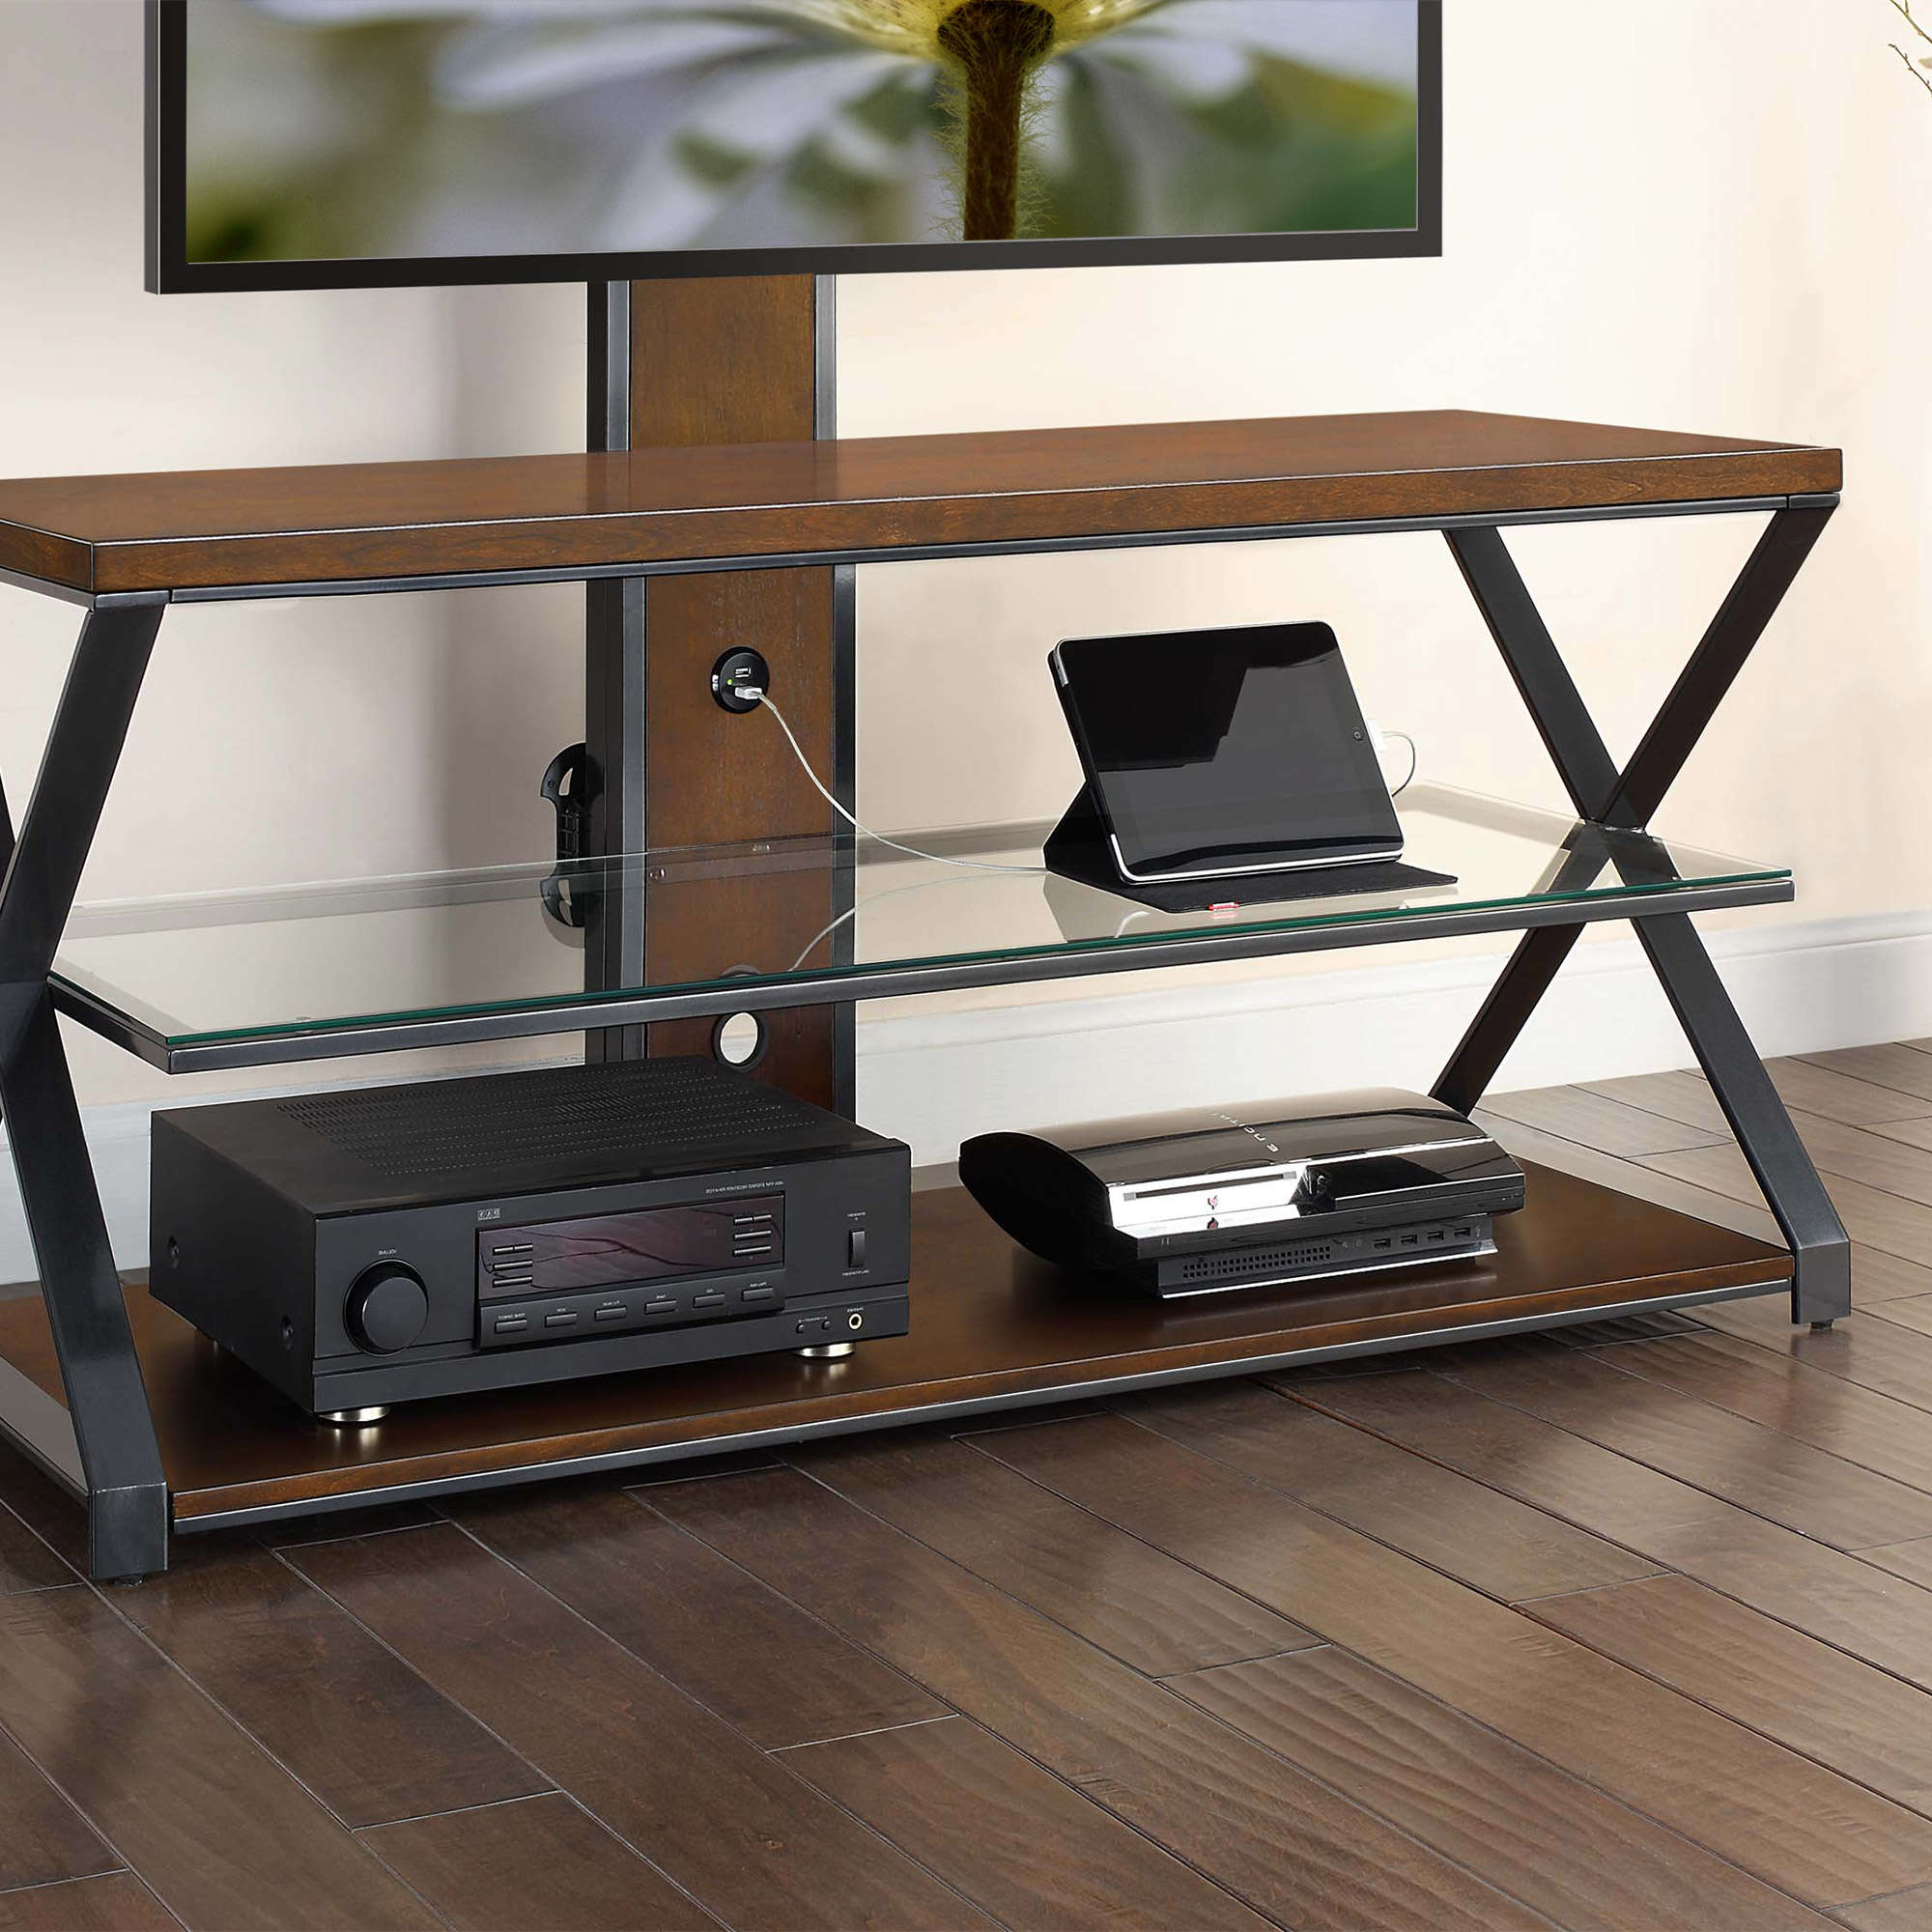 "Jaxon 3 In 1 Cognac Tv Stand For Tvs Up To 70"" – Walmart Intended For Jaxon 76 Inch Plasma Console Tables (View 9 of 20)"